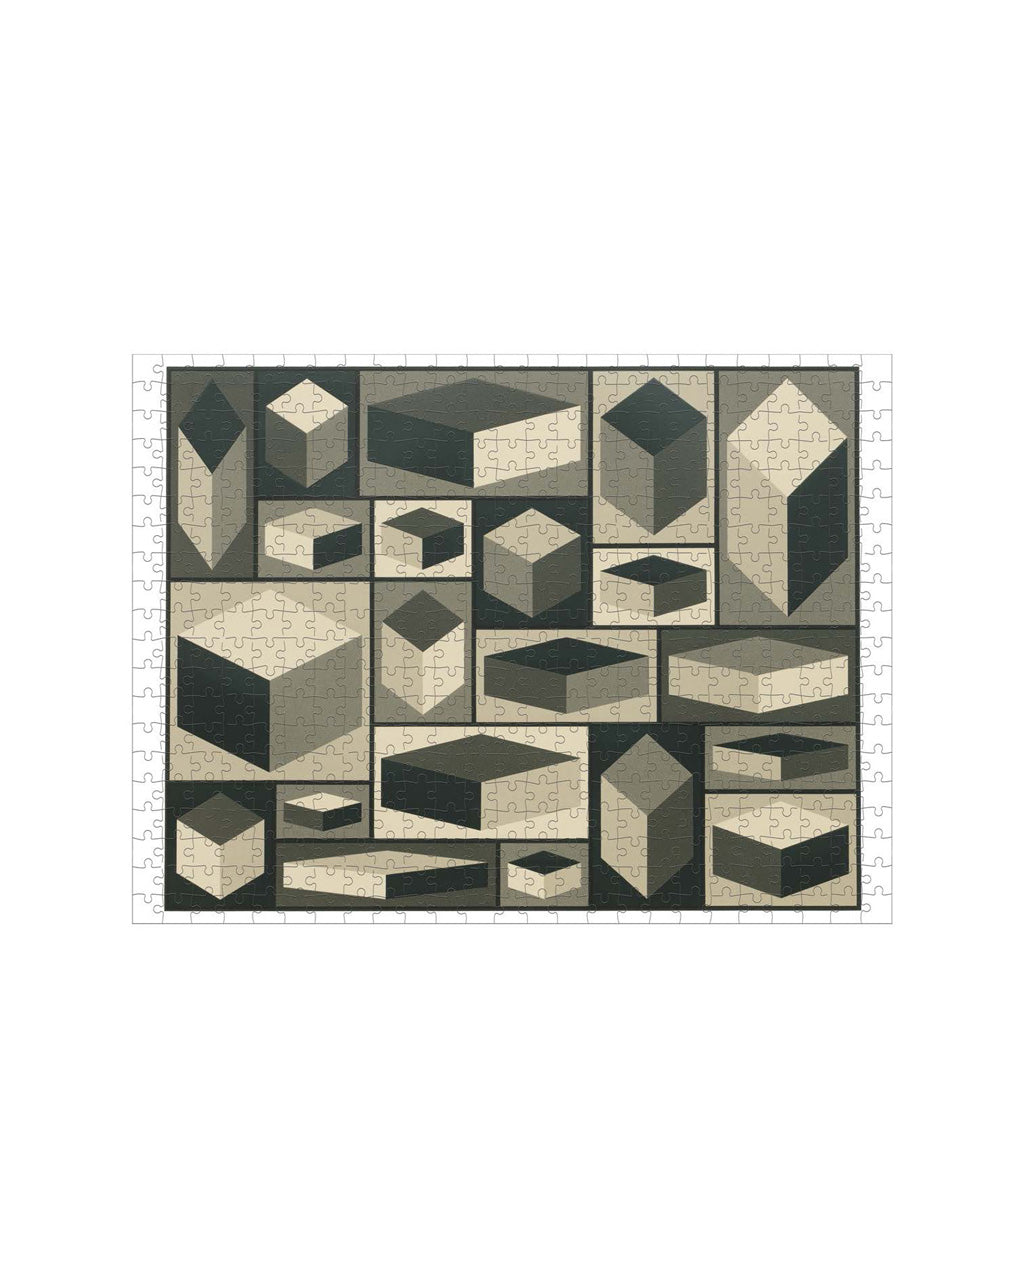 second side of the puzzle showing the 3d geometrical shapes in black and white